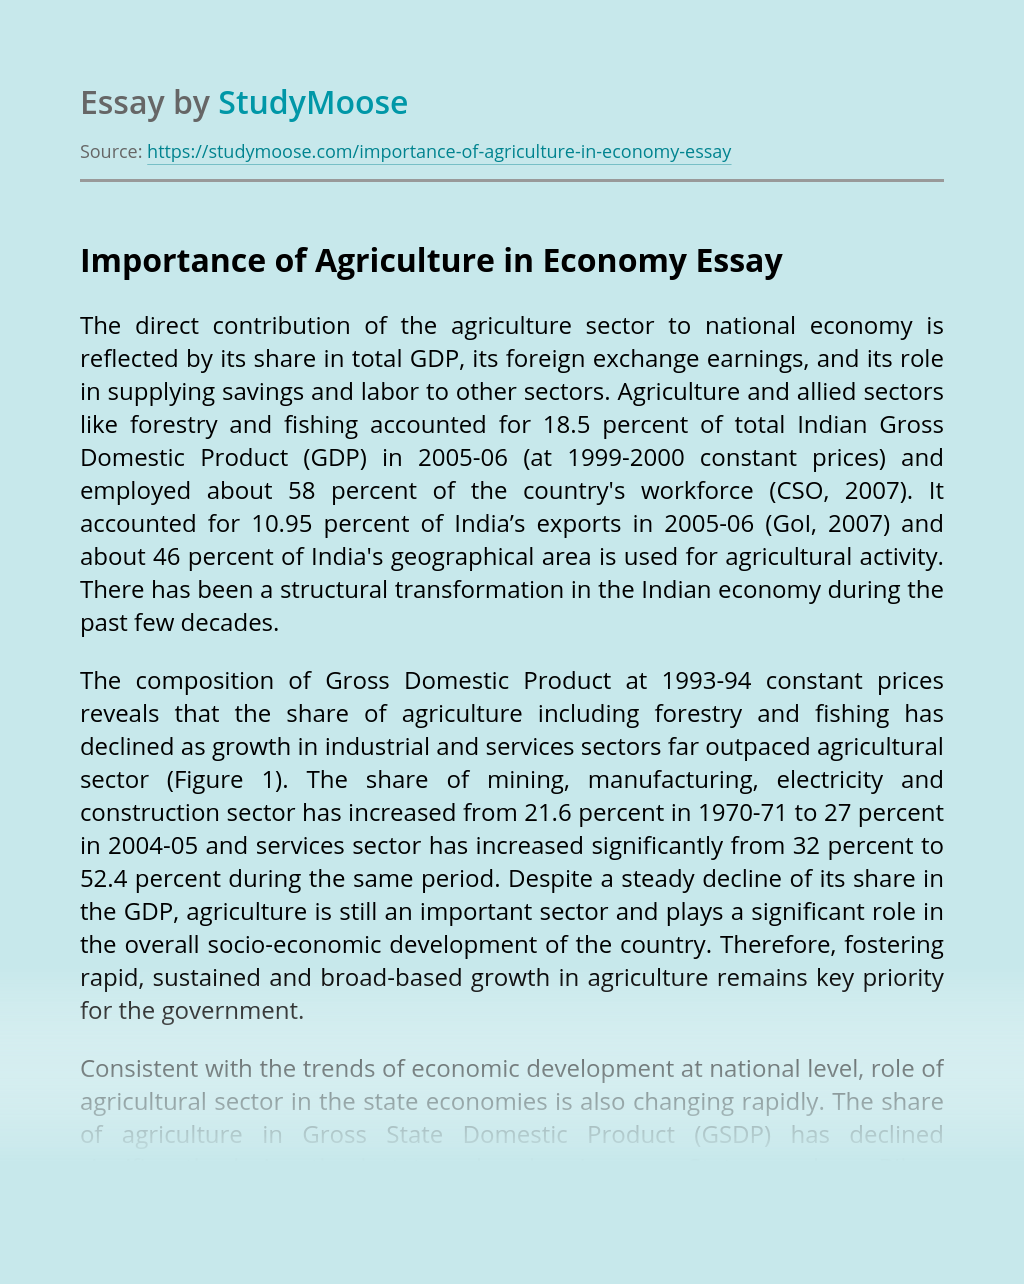 Importance of Agriculture in Economy